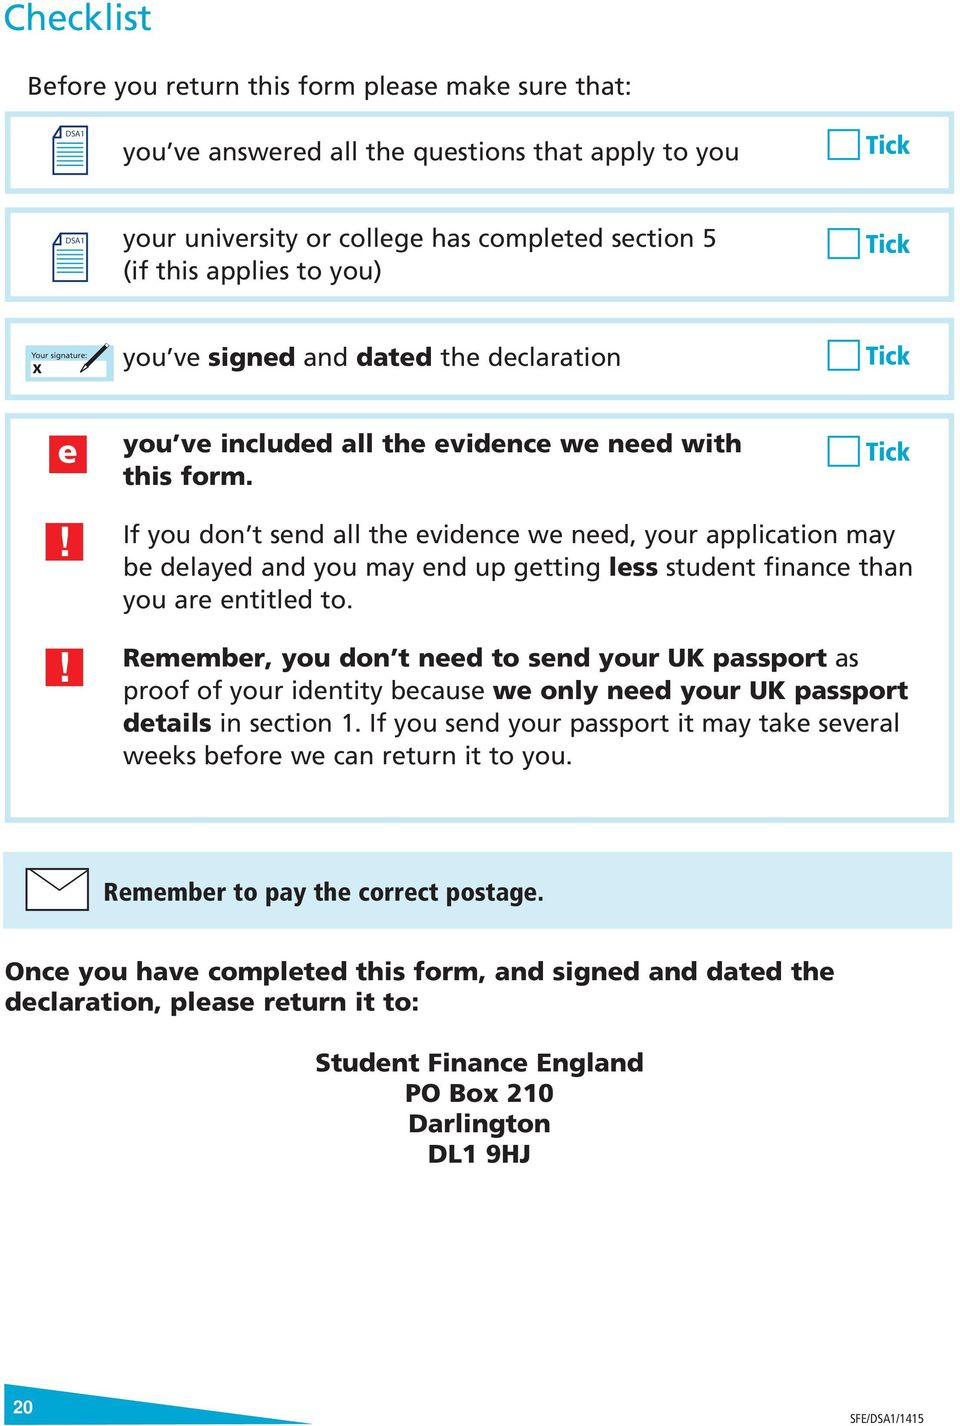 ! Remember, you don t need to send your UK passport as proof of your identity because we only need your UK passport details in section 1.